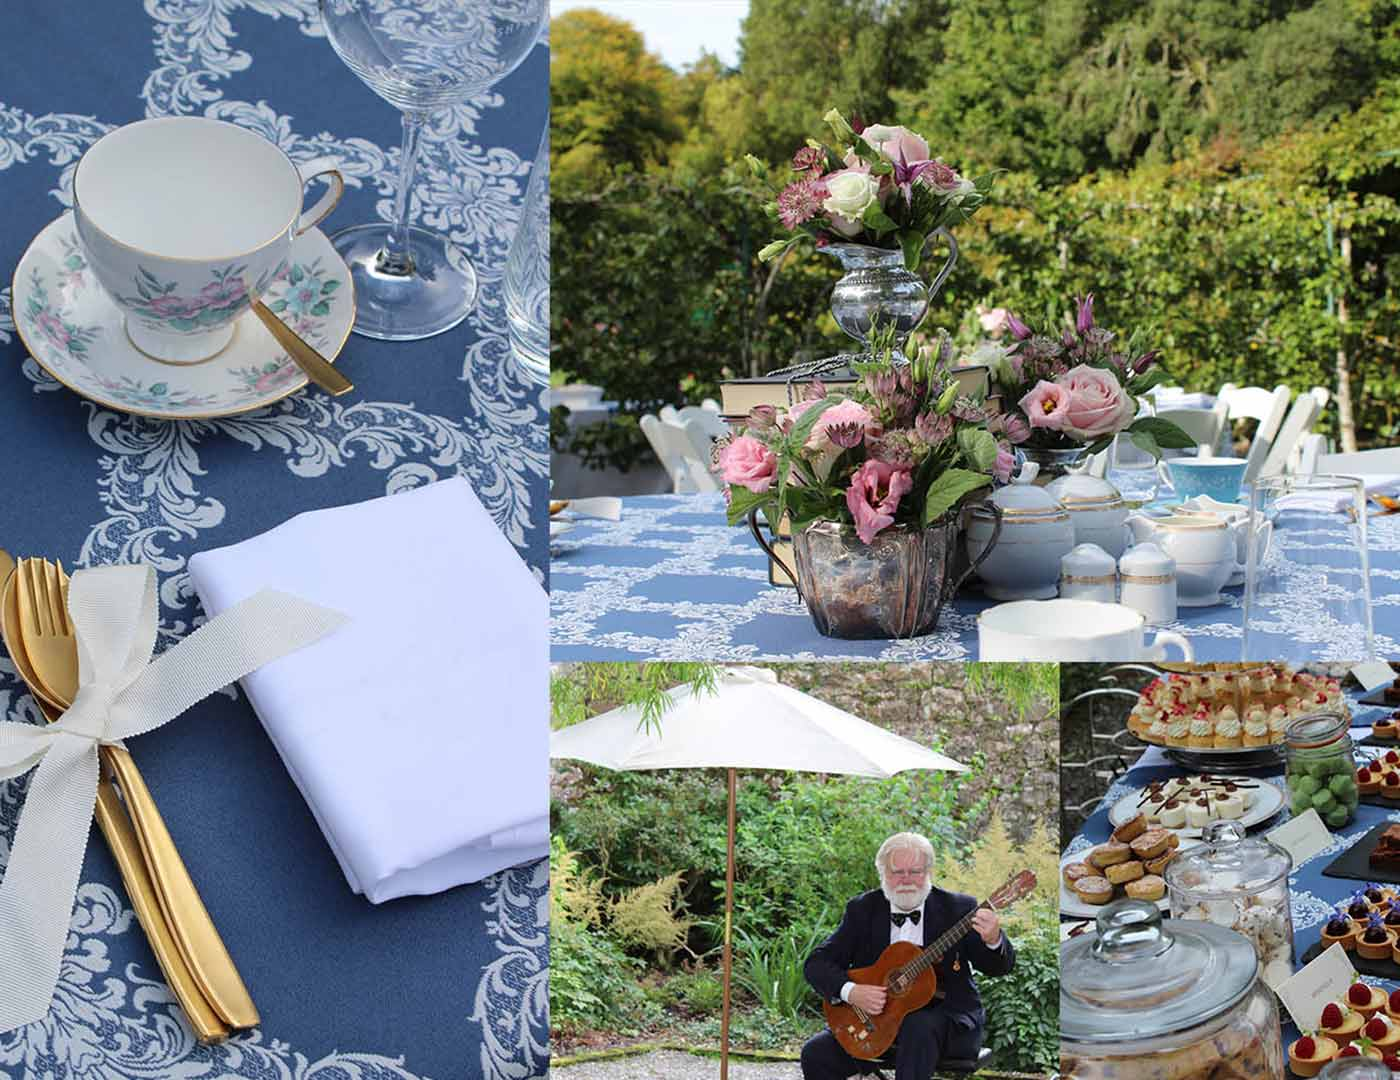 Ashford Castle, Tea Party, Marquee ceremony, Event planner in Ireland, Wedding Planner in Ireland, Destination Weddings, Olivia Buckley International